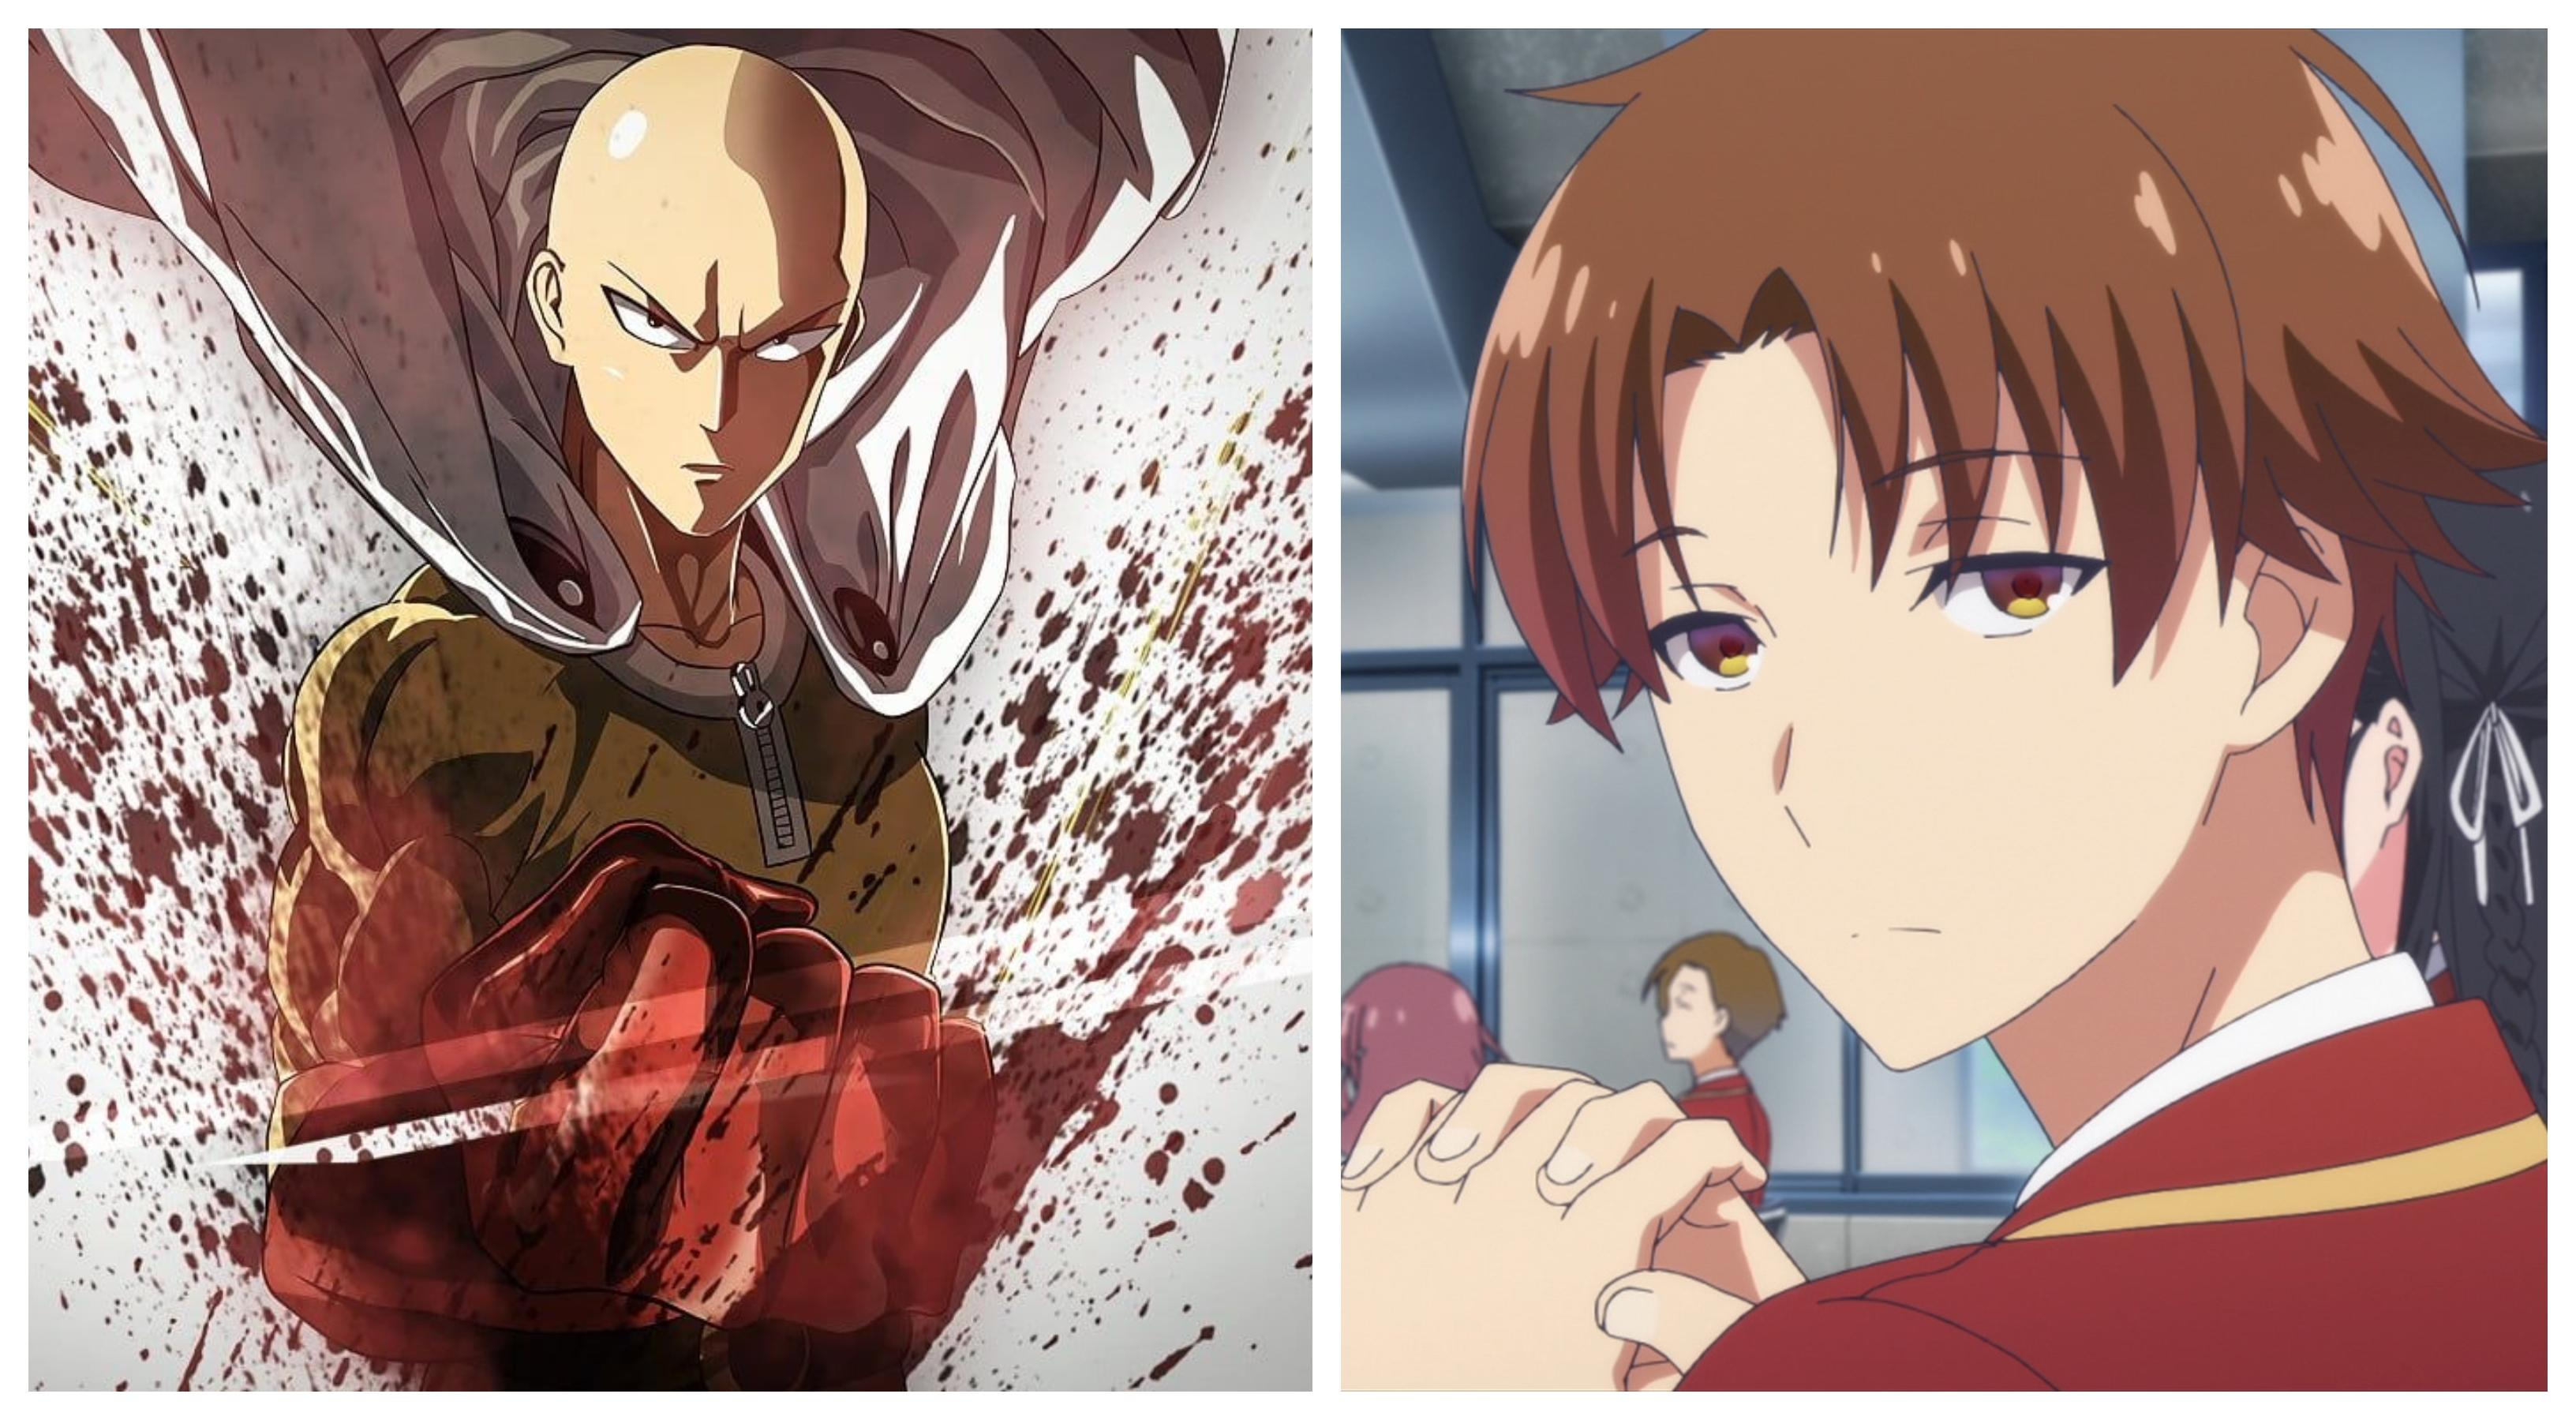 Best overpowered main character in anime